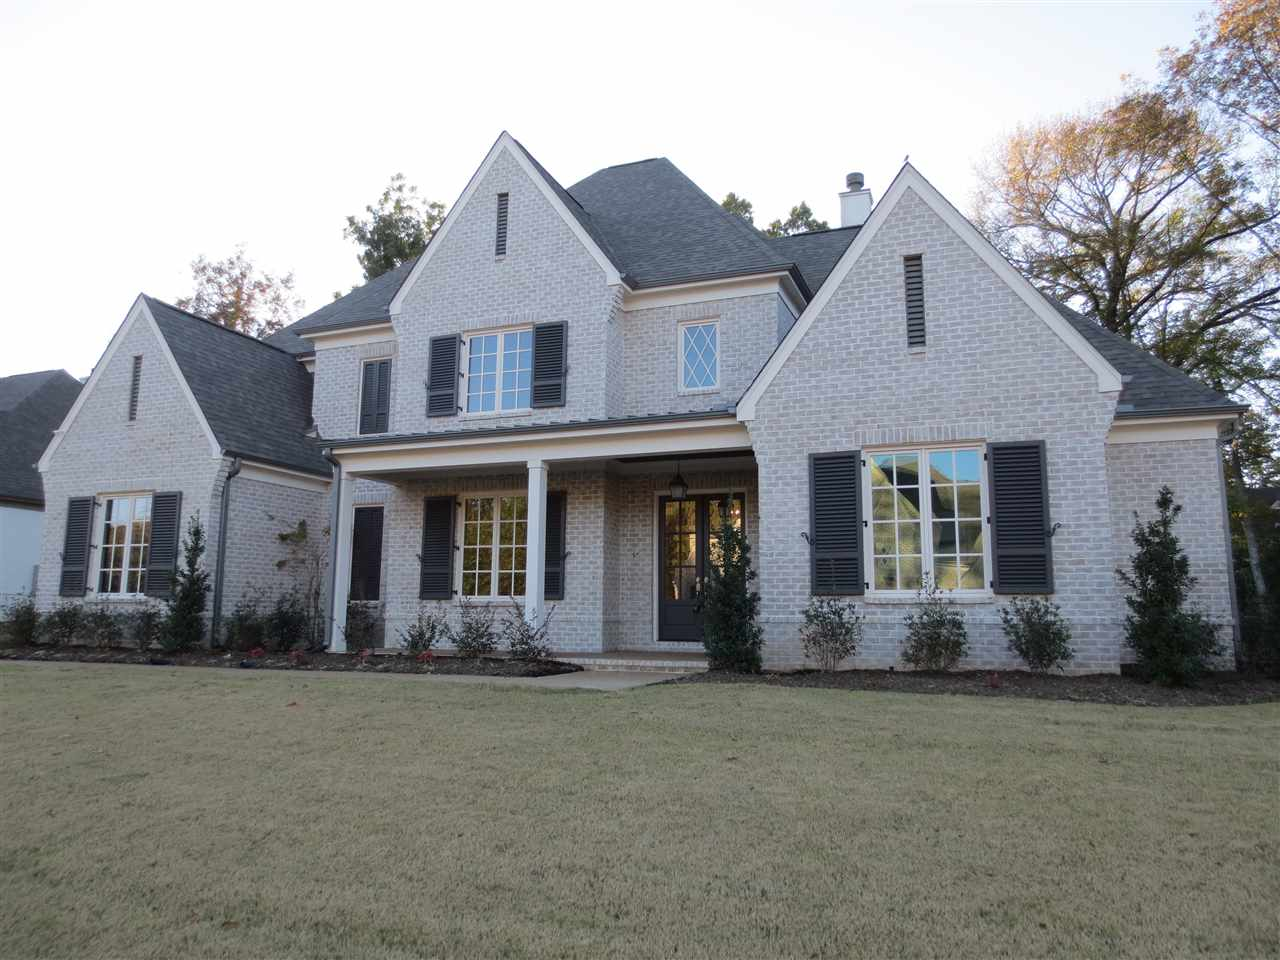 47 Addiegreen Collierville, TN 38017 - MLS #: 10003764